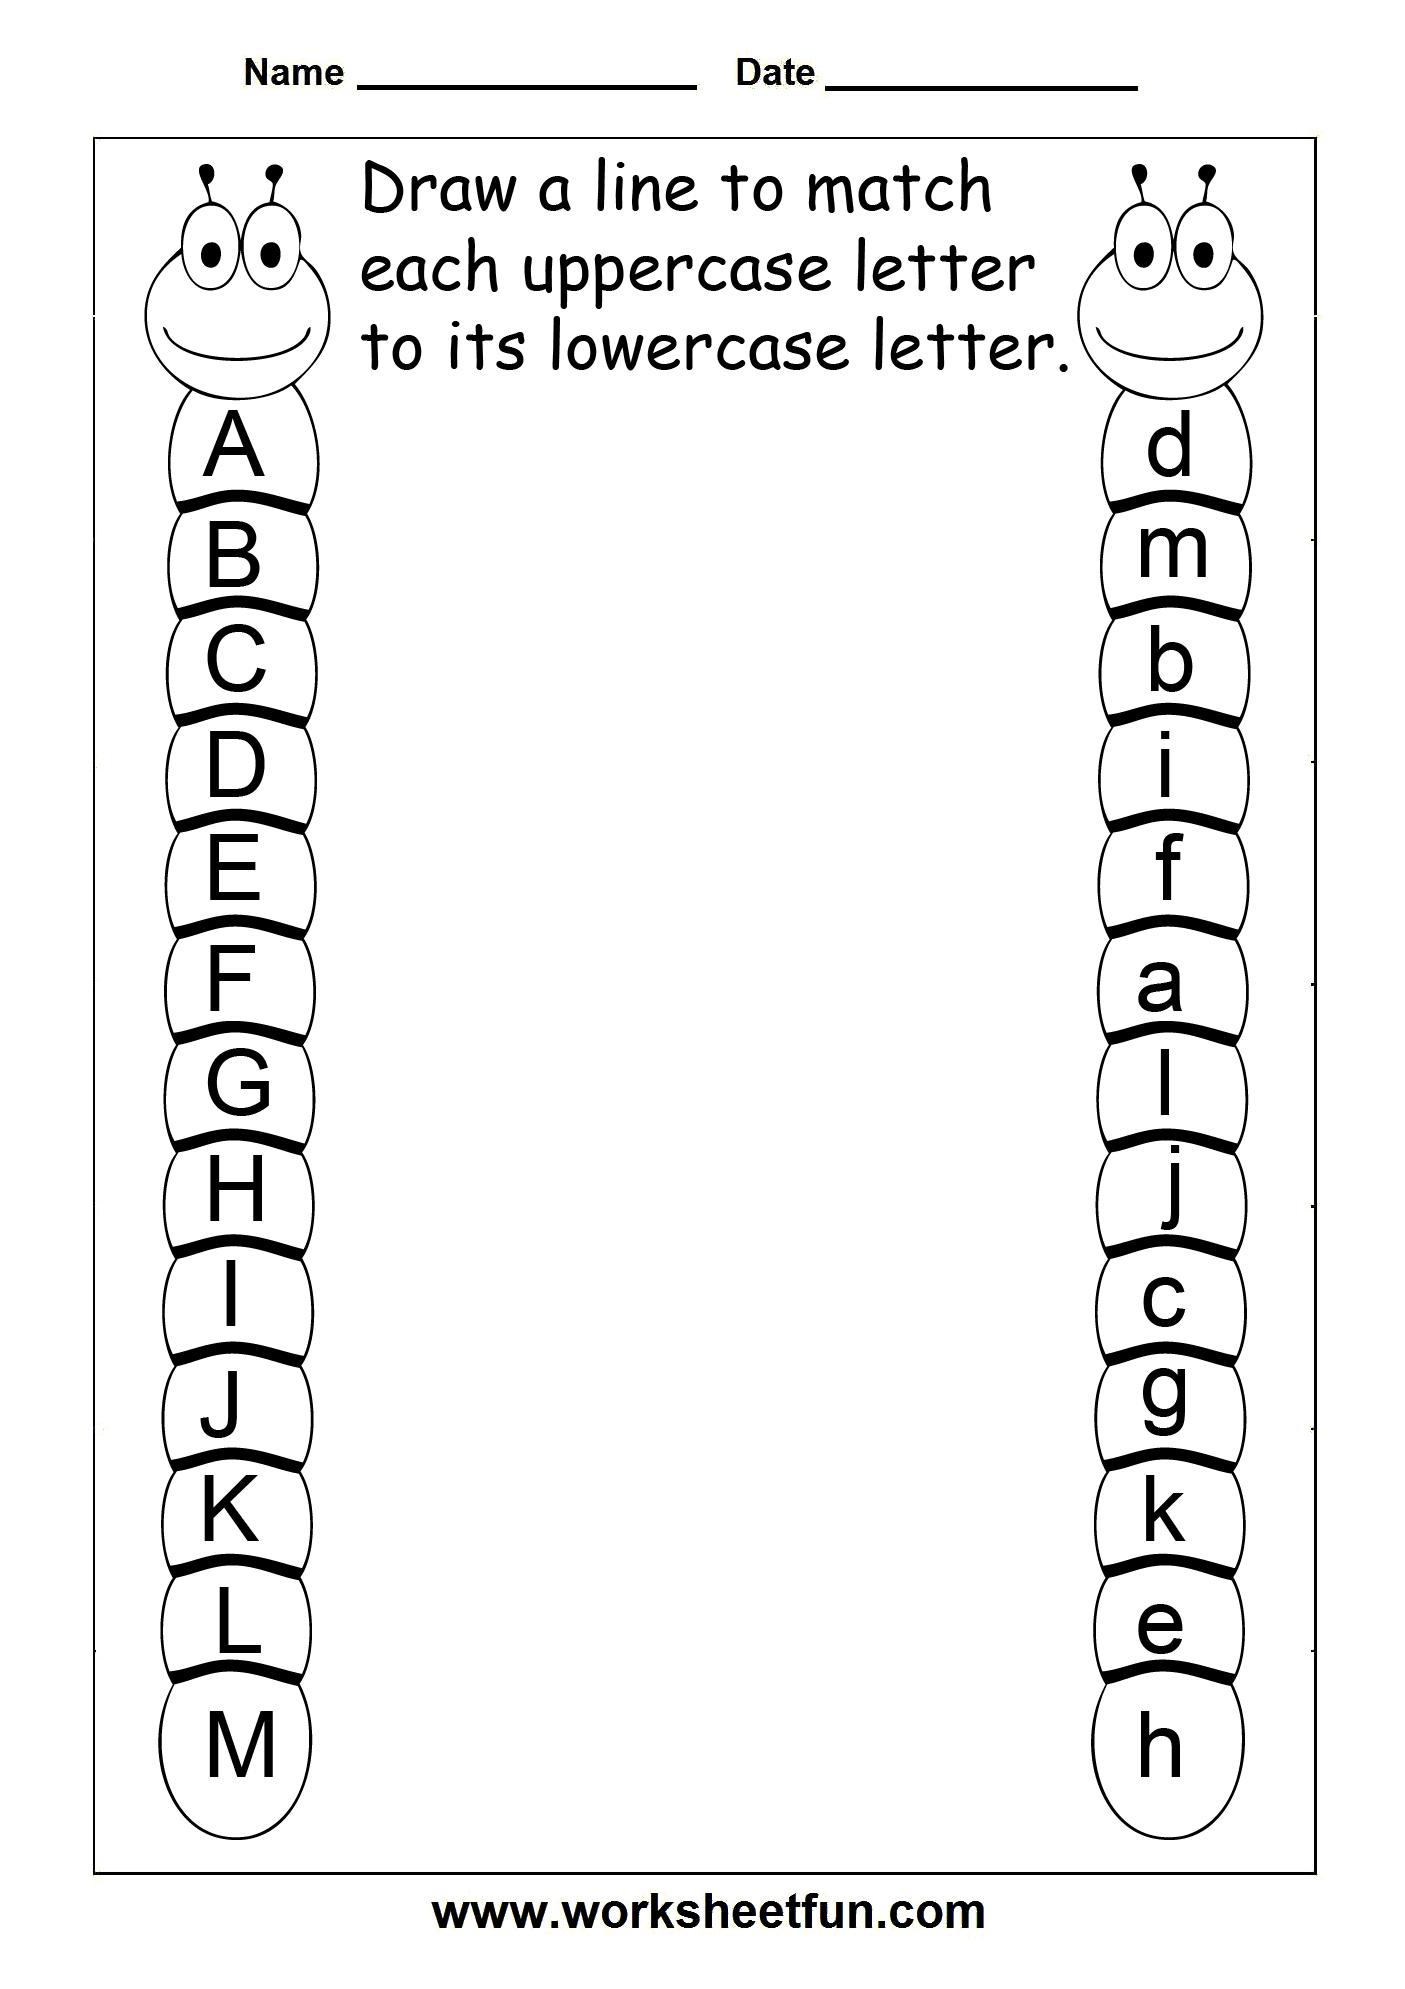 Weirdmailus  Marvelous  Images About Work Worksheet On Pinterest  Hidden Pictures  With Fetching  Images About Work Worksheet On Pinterest  Hidden Pictures Color By Numbers And Puzzles With Delightful Vowel And Consonant Worksheets Also Grade  Multiplication Worksheets In Addition Kindergarten Math Common Core Worksheets And Mazes For Kindergarten Worksheets As Well As Percent Equation Worksheets Additionally Th Grade Reading Worksheets Free Printable From Pinterestcom With Weirdmailus  Fetching  Images About Work Worksheet On Pinterest  Hidden Pictures  With Delightful  Images About Work Worksheet On Pinterest  Hidden Pictures Color By Numbers And Puzzles And Marvelous Vowel And Consonant Worksheets Also Grade  Multiplication Worksheets In Addition Kindergarten Math Common Core Worksheets From Pinterestcom